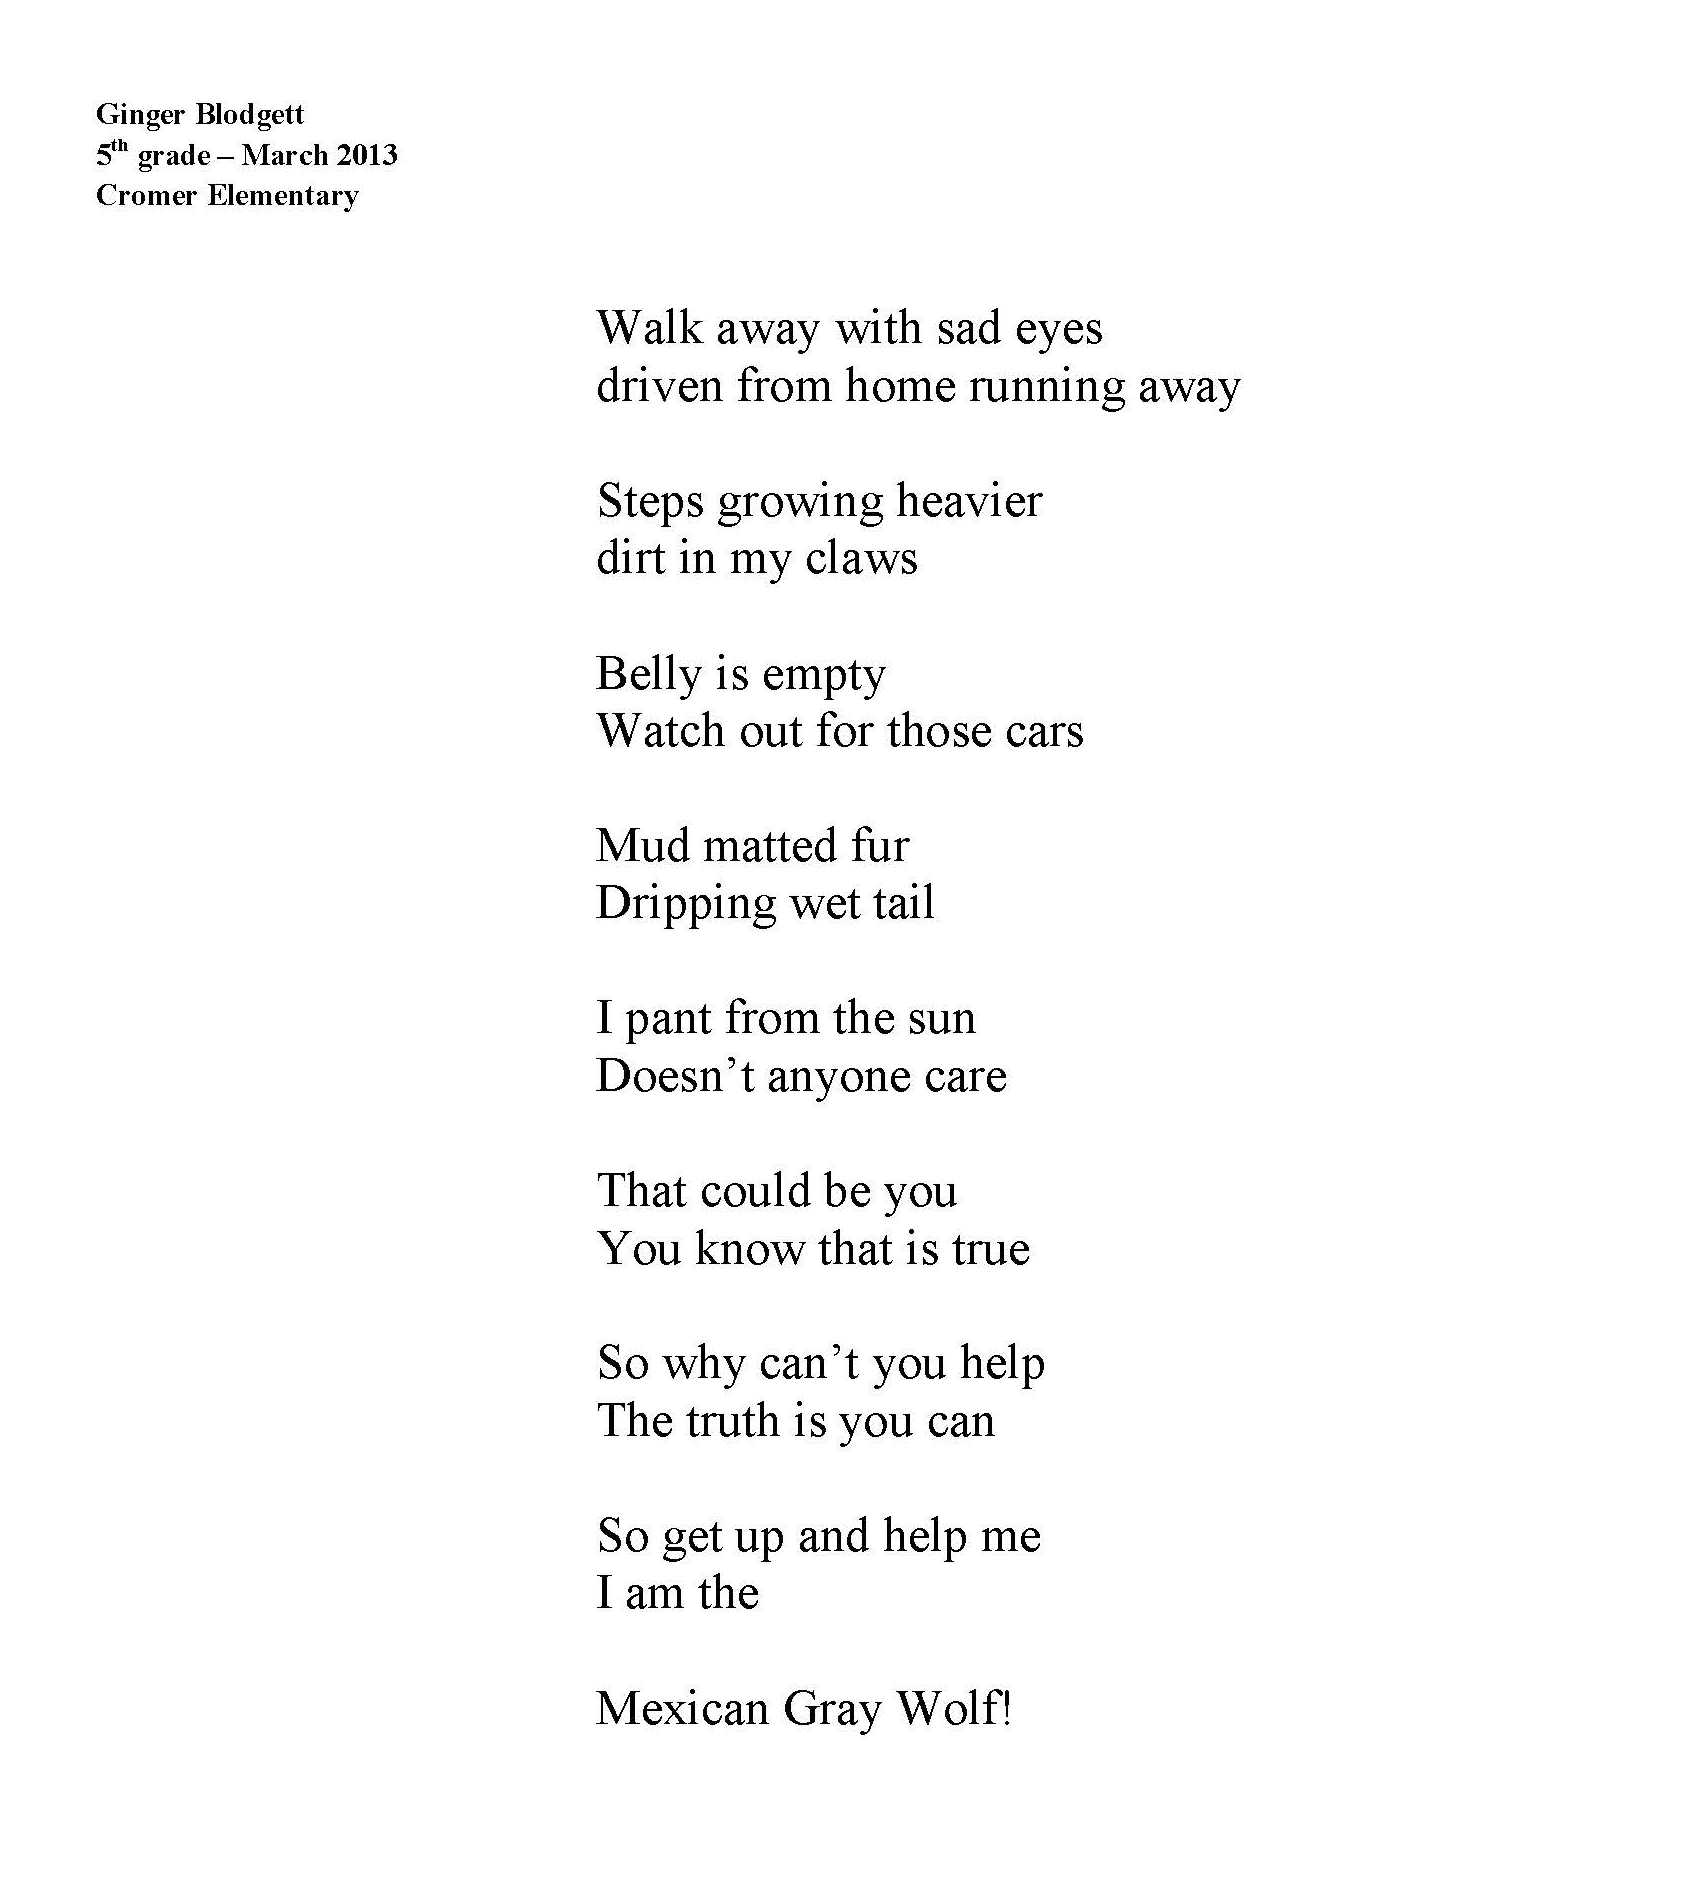 Mexican wolf poem by Ginger Blodgett